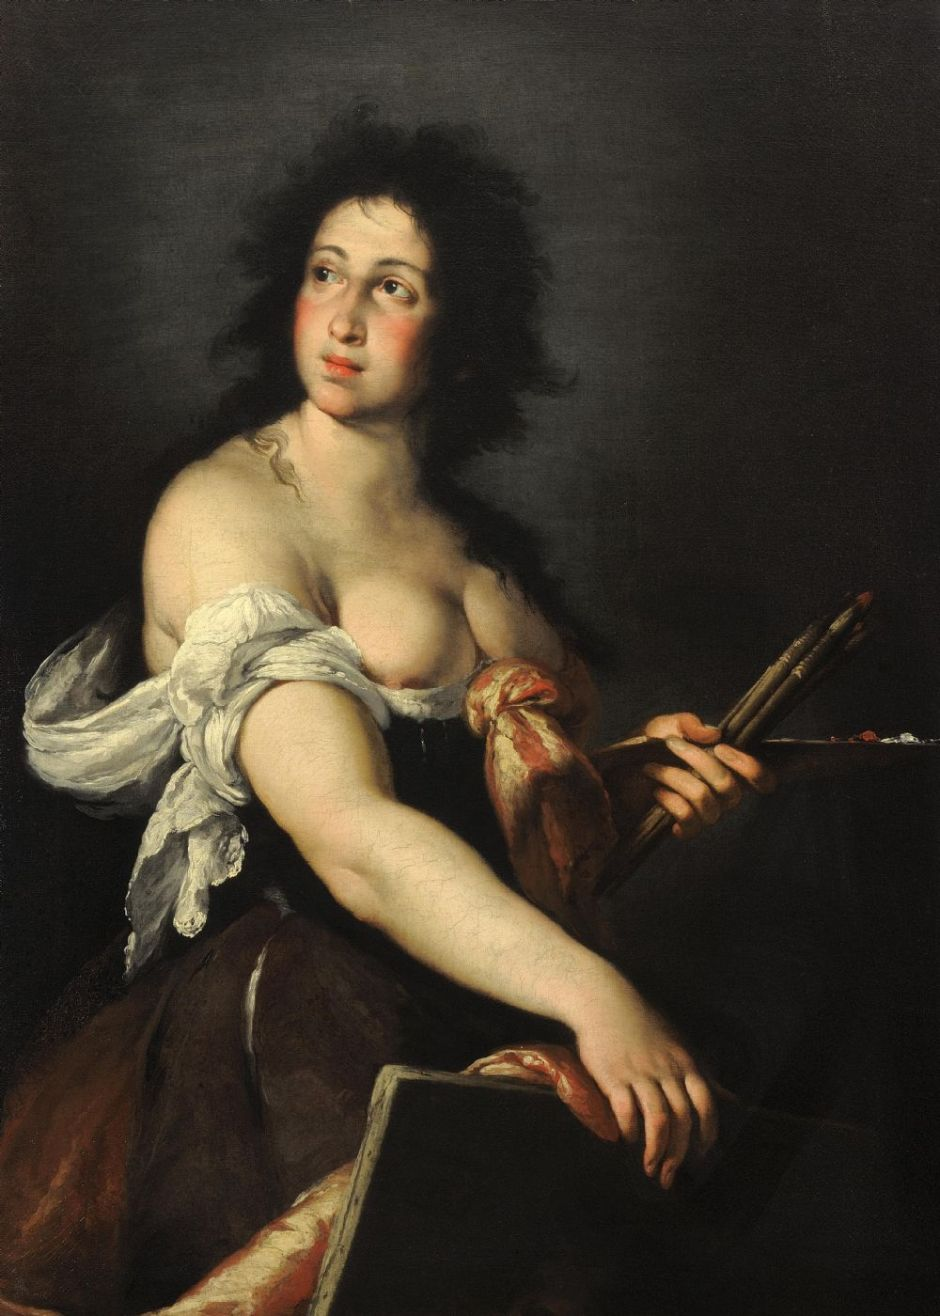 strozziallegorypainting